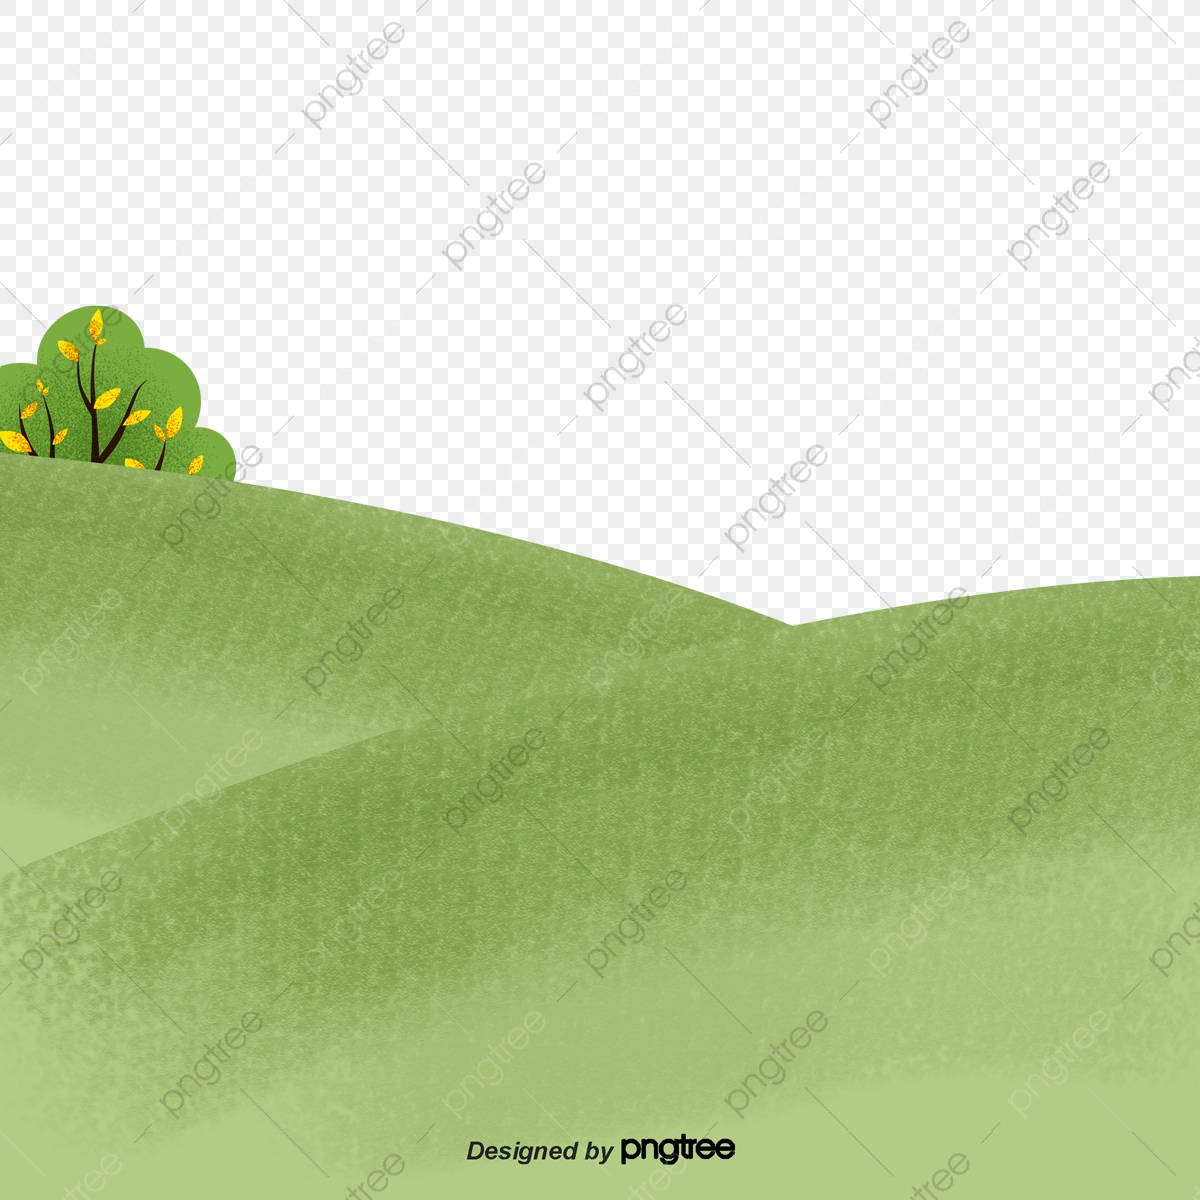 Cartoon Green Grassland Bottom Line Cartoon Shading Spring Png Transparent Clipart Image And Psd File For Free Download